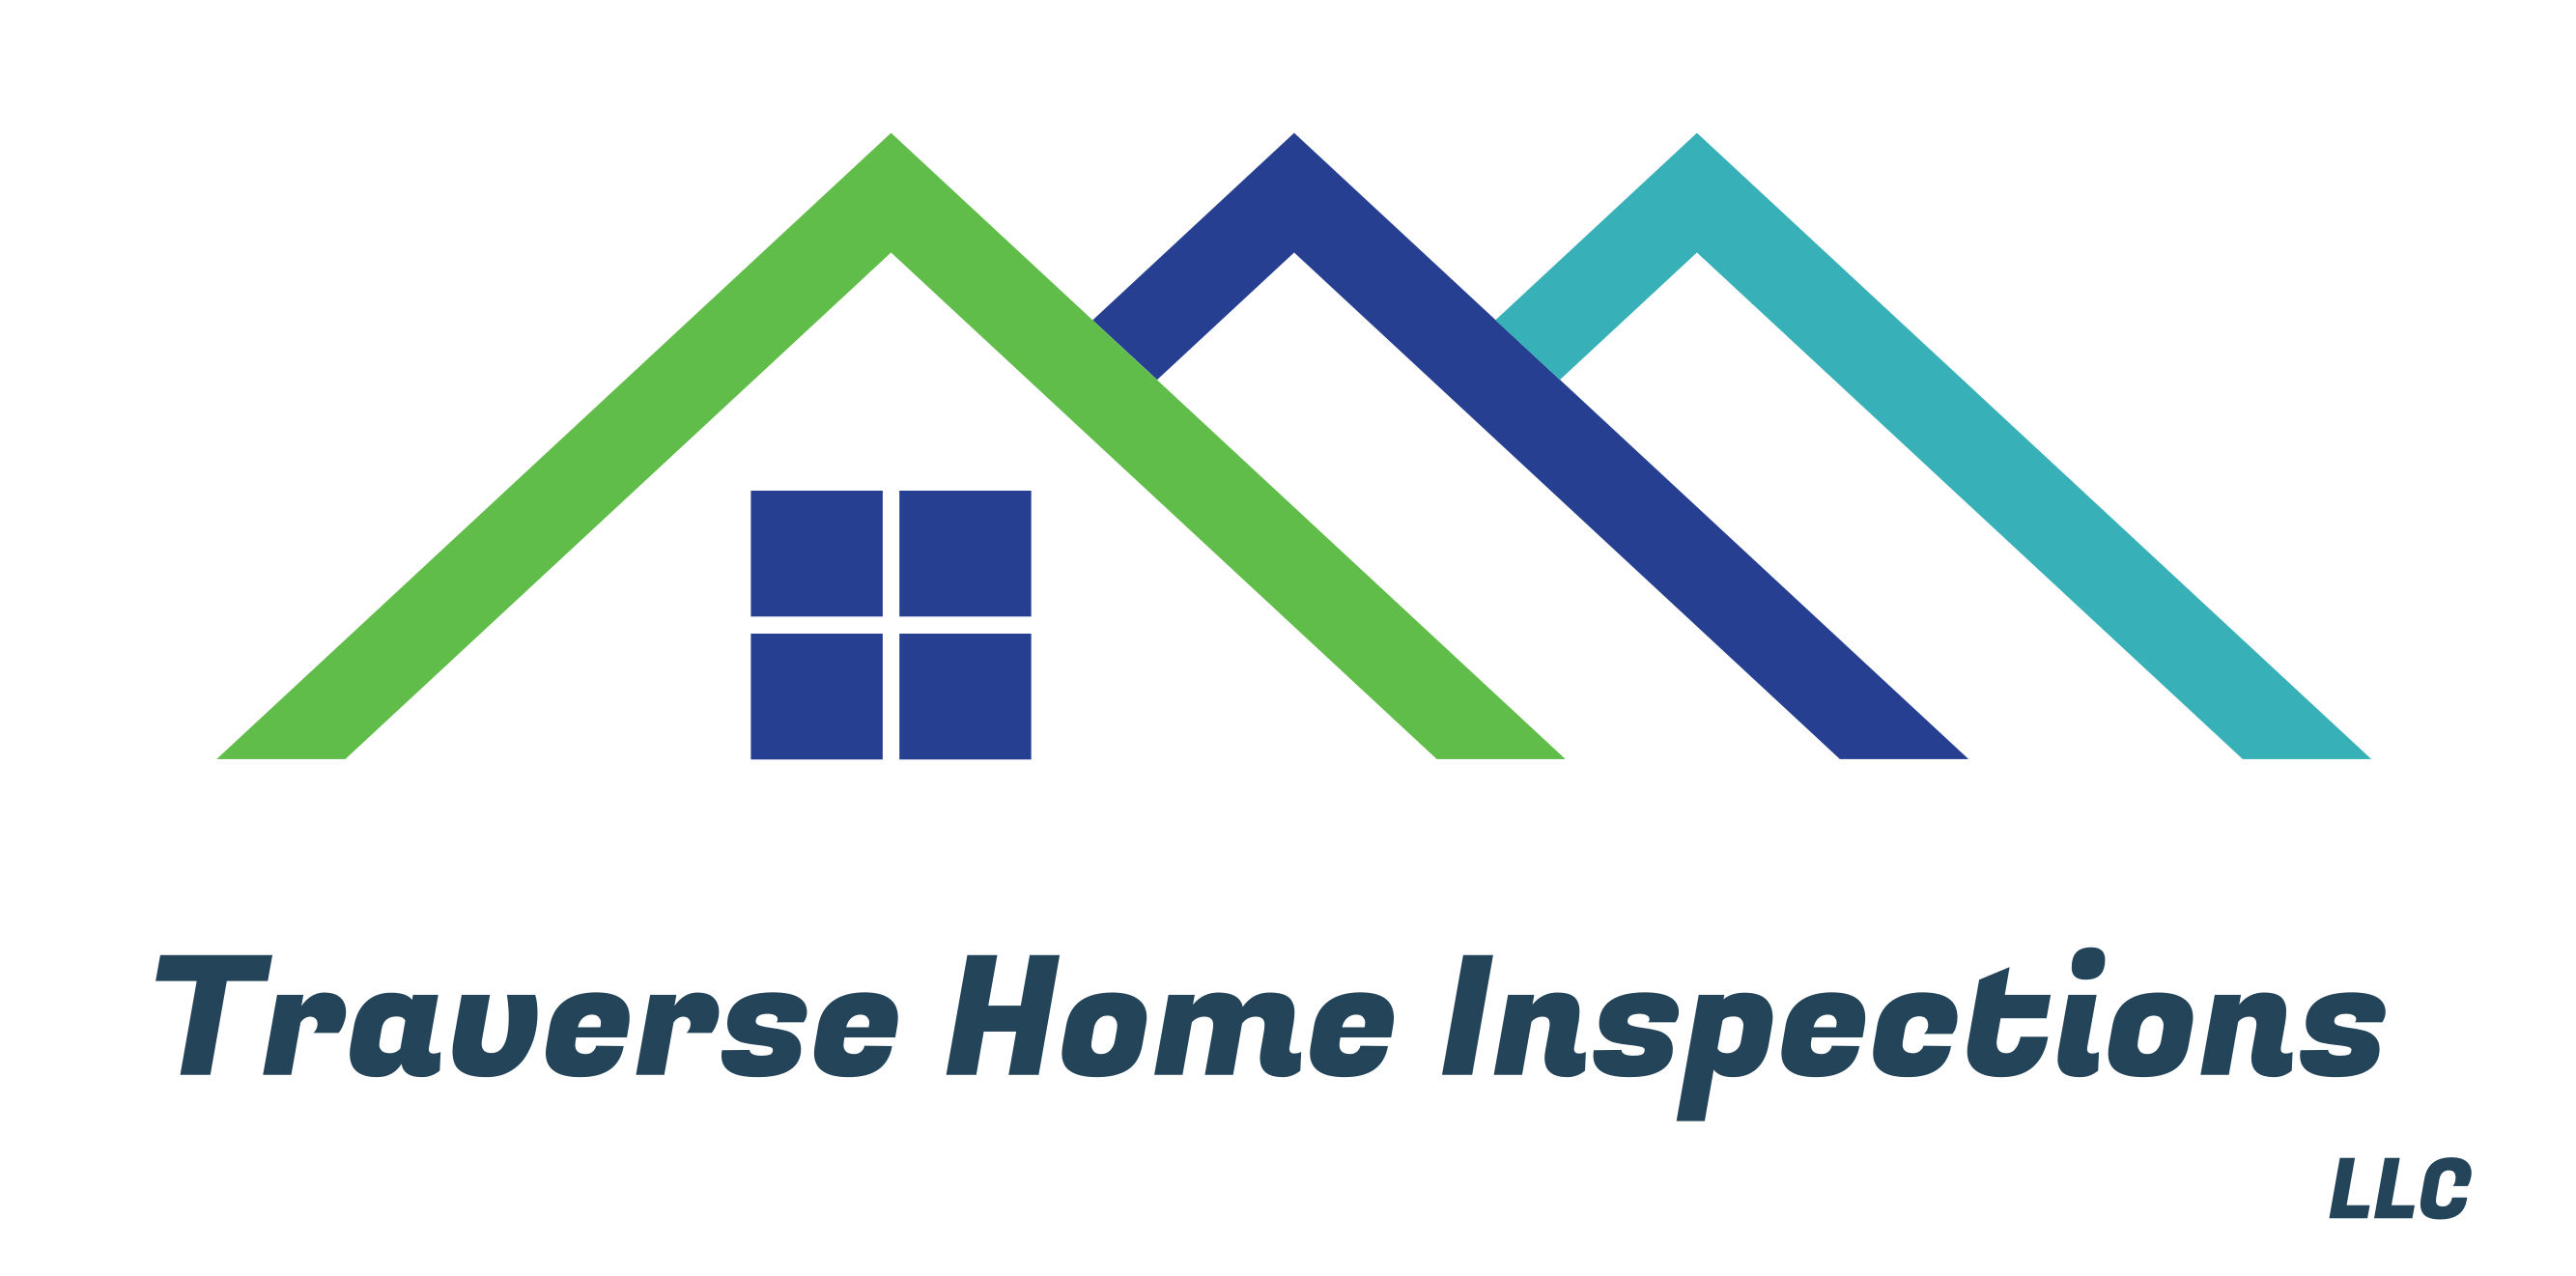 Traverse Home Inspections